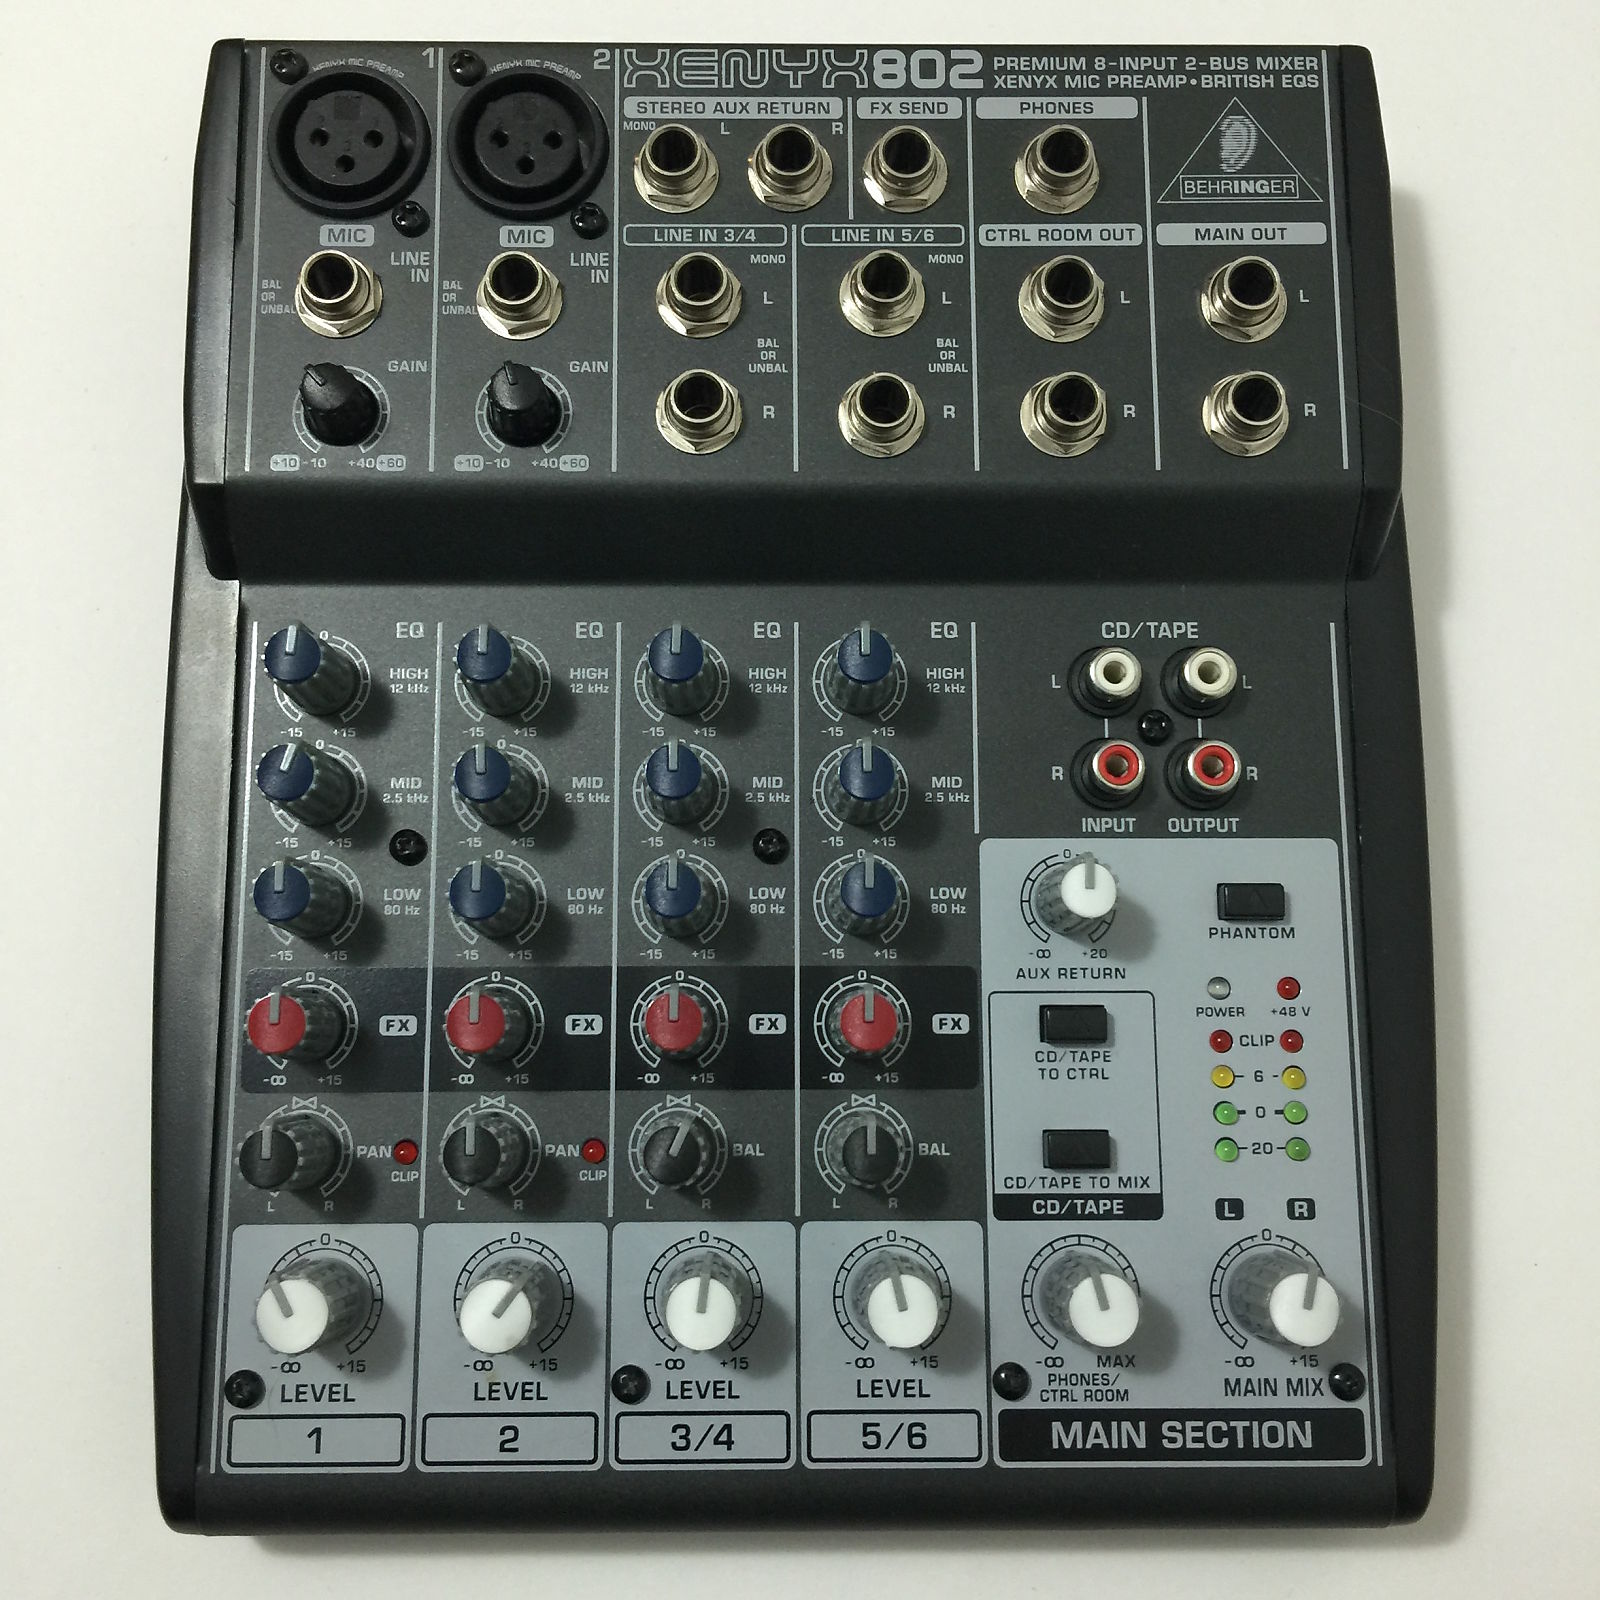 behringer 802 8 input 2 bus mixer xenyx eq reverb. Black Bedroom Furniture Sets. Home Design Ideas